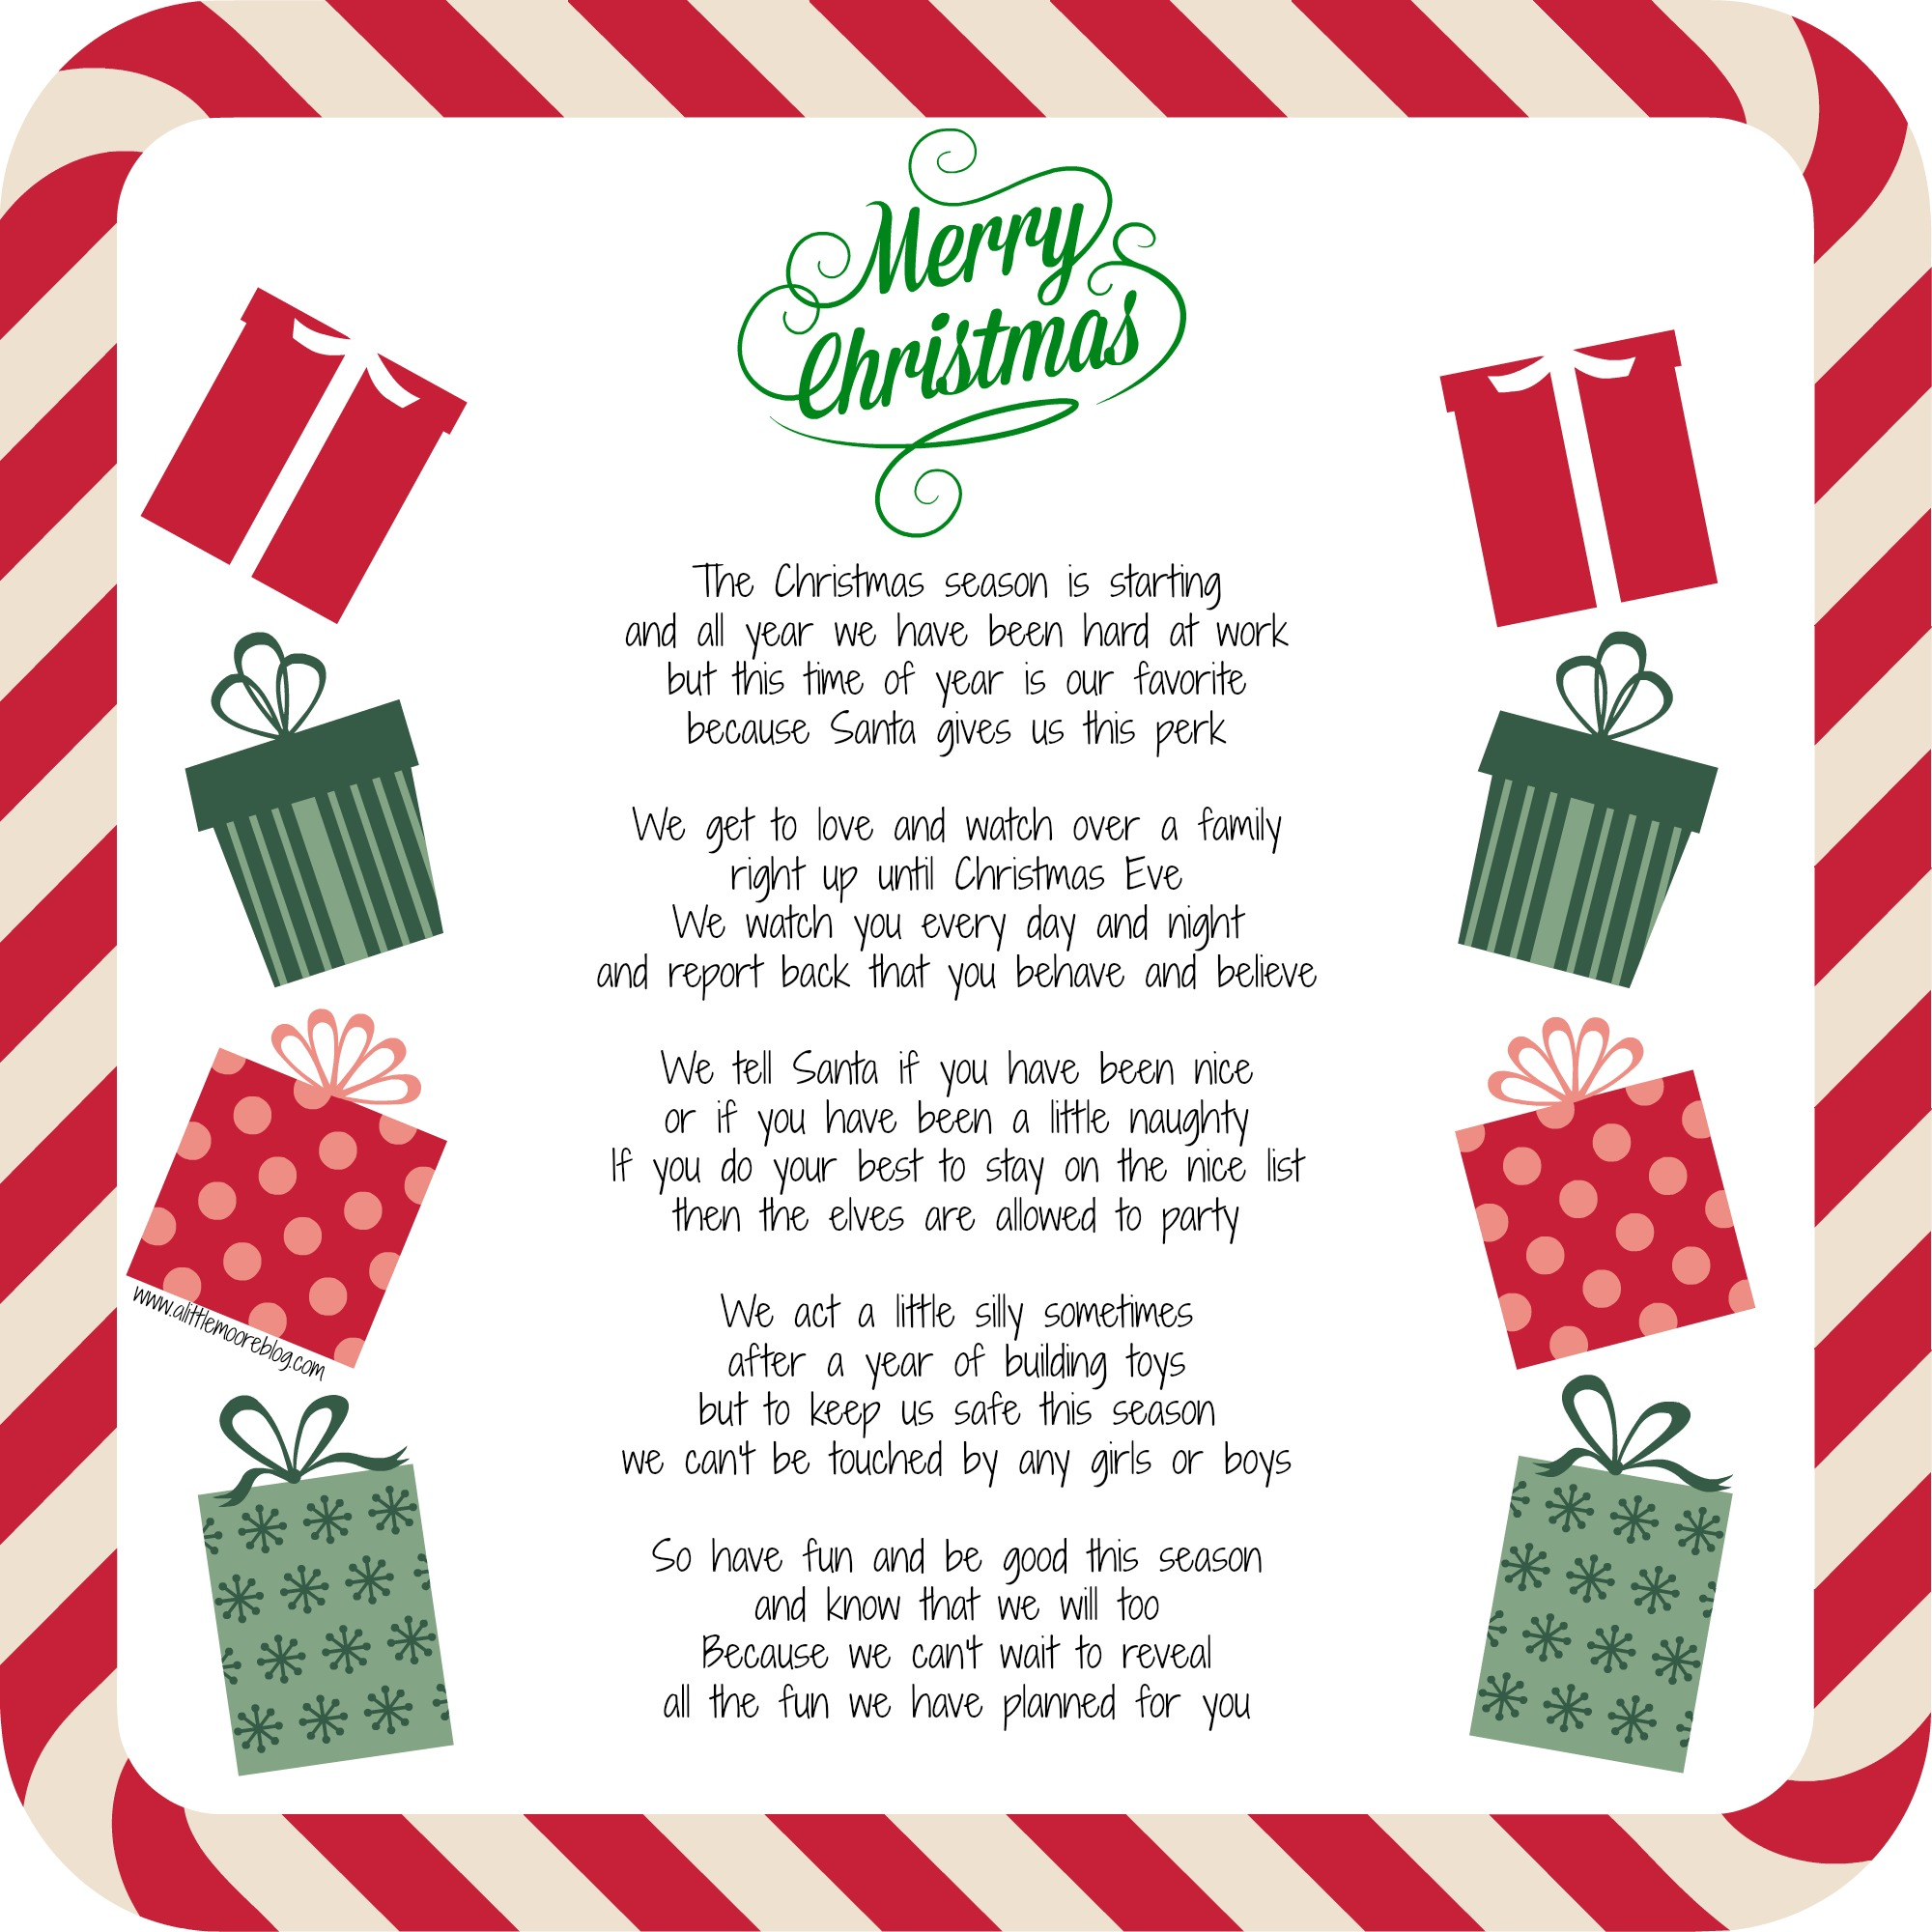 This is a photo of Elf on the Shelf Welcome Letter Printable throughout checking letter